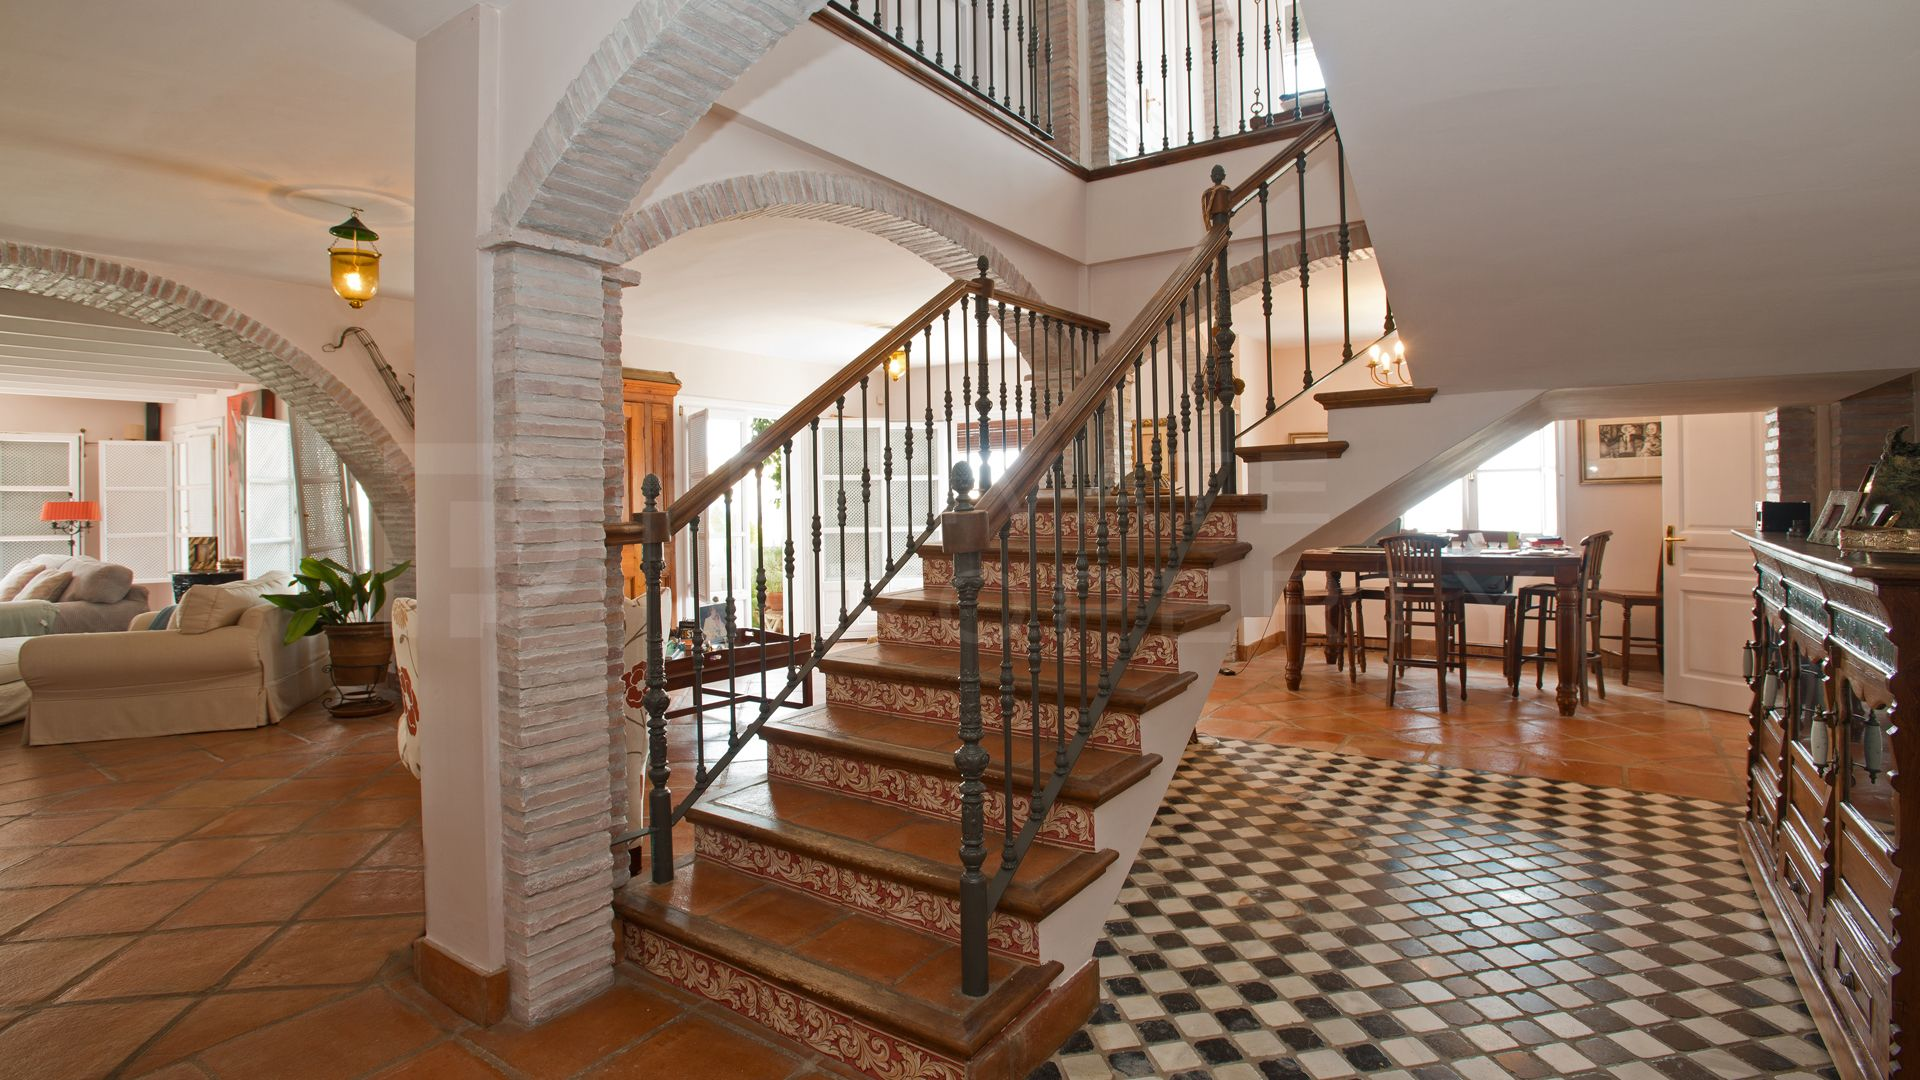 Townhouse for rent in La Heredia